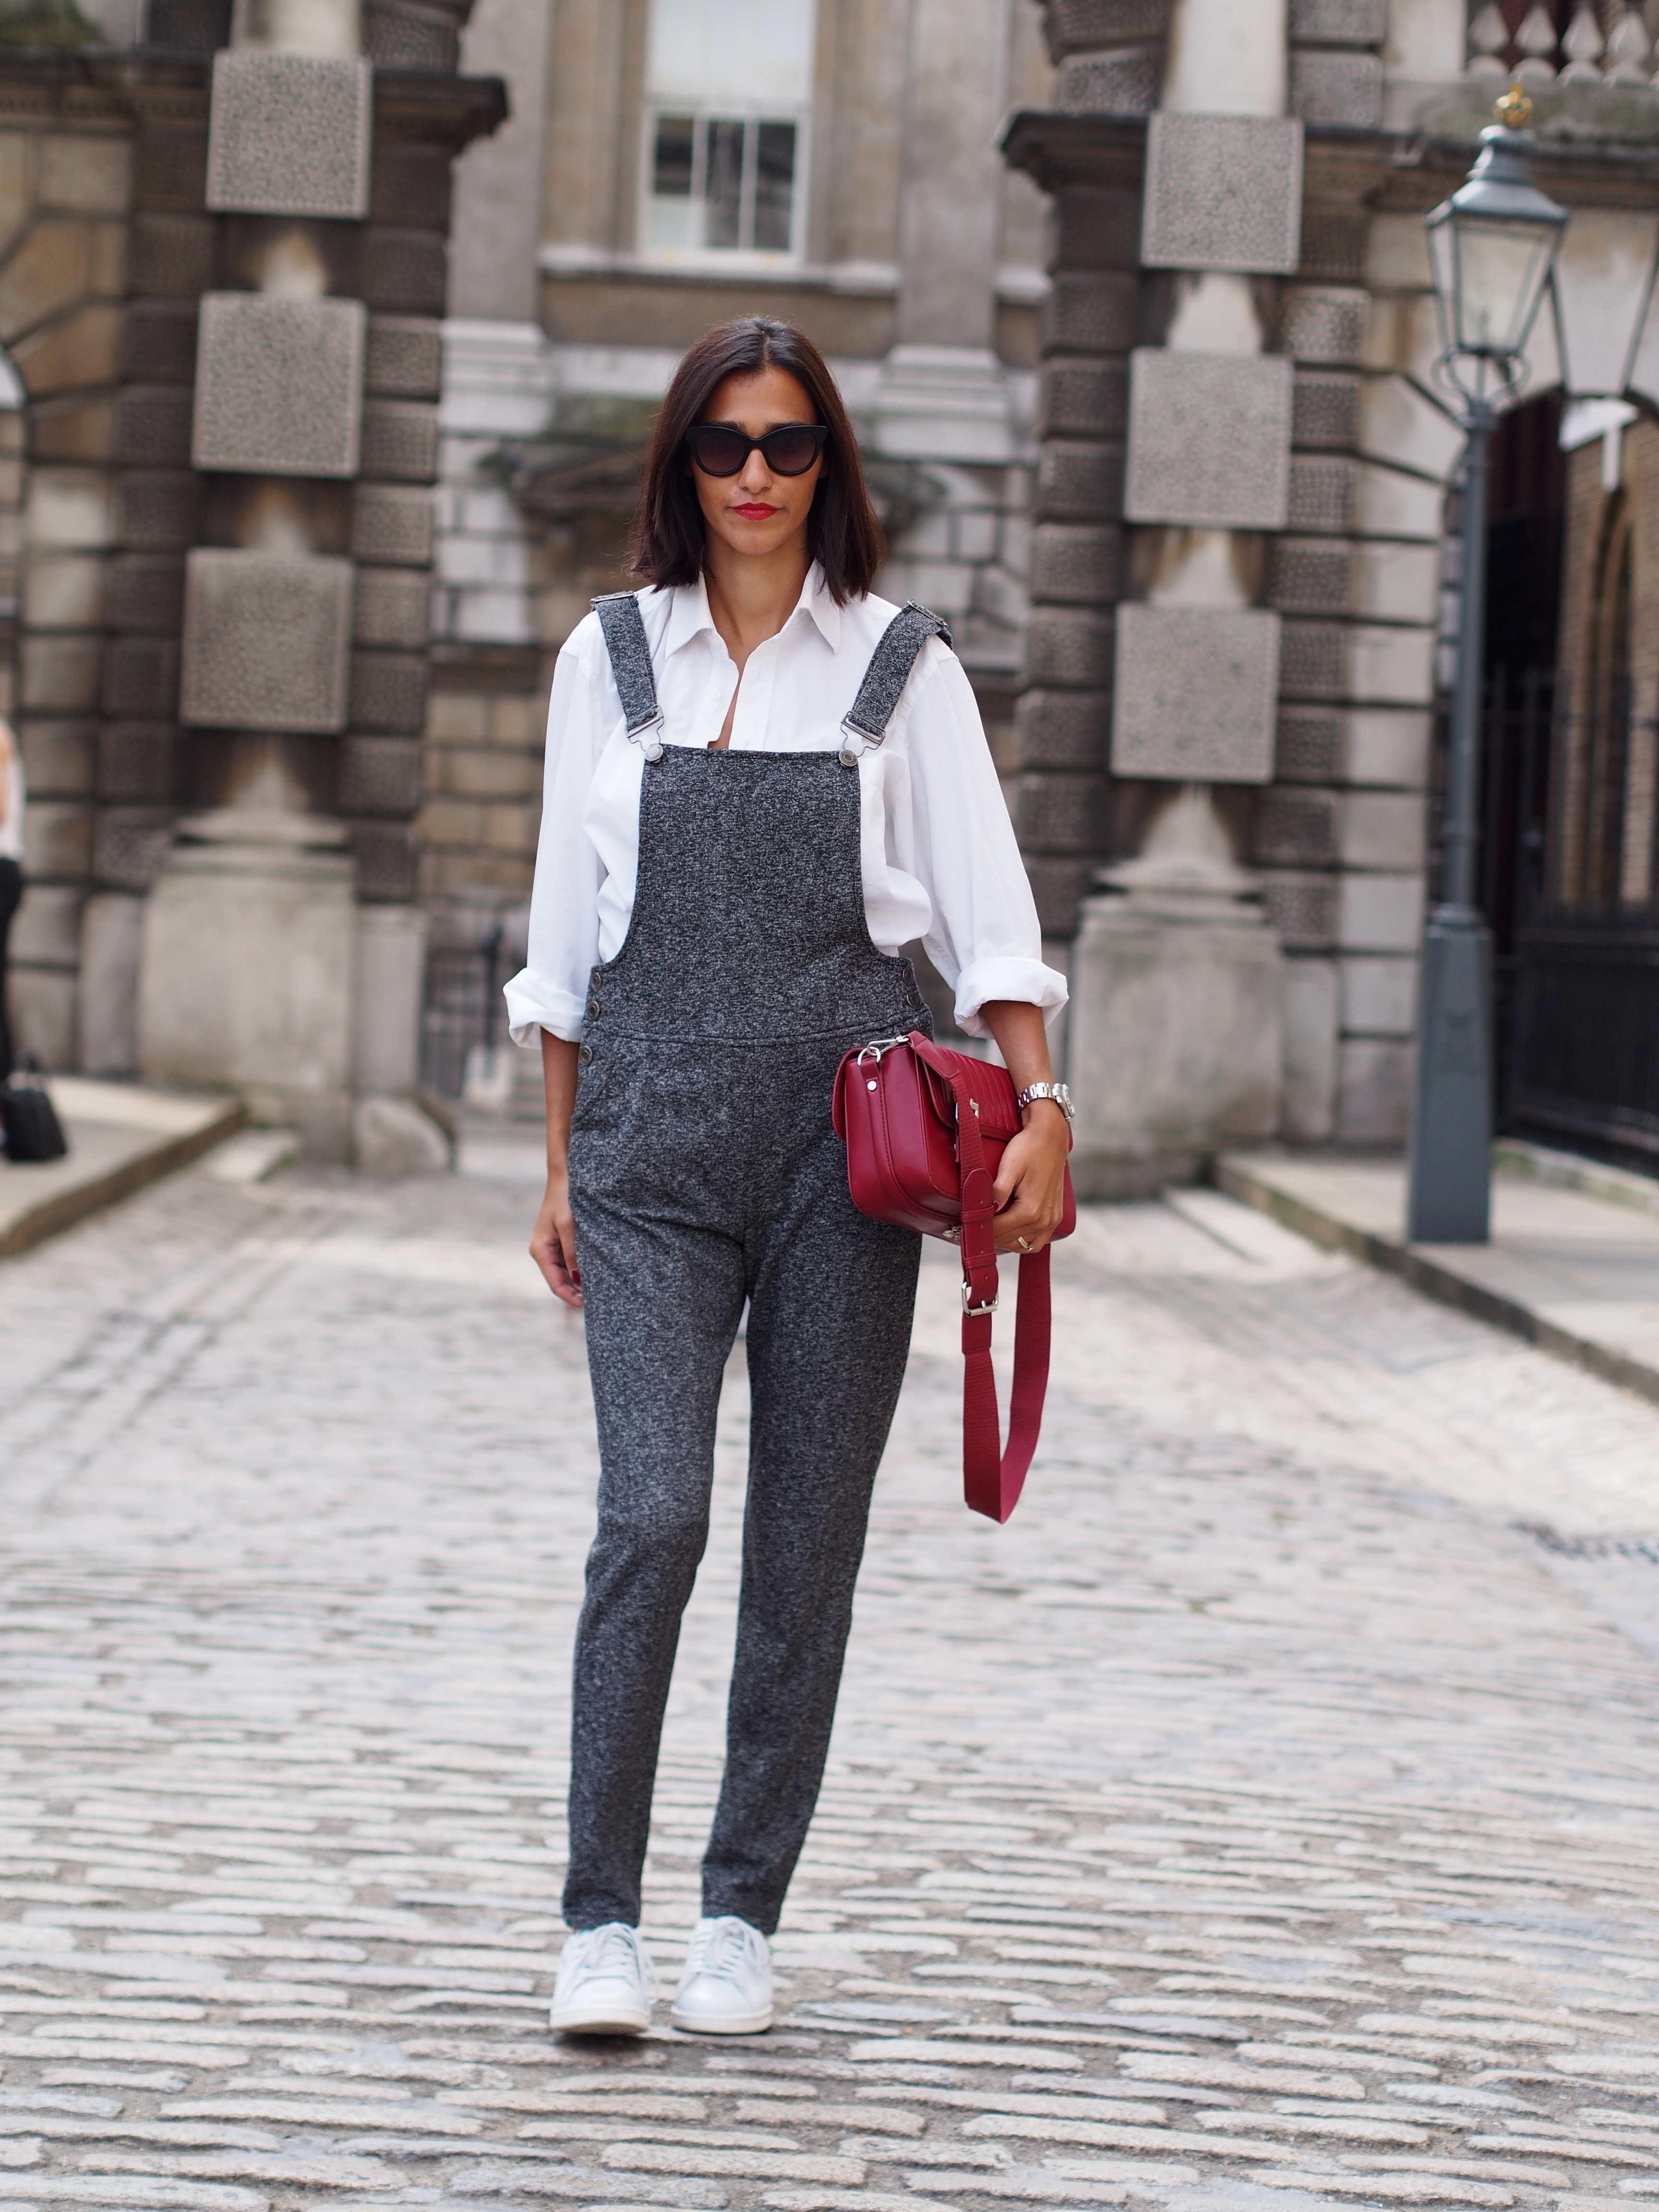 London fashion week street style Atosa Nikkhah blogger London